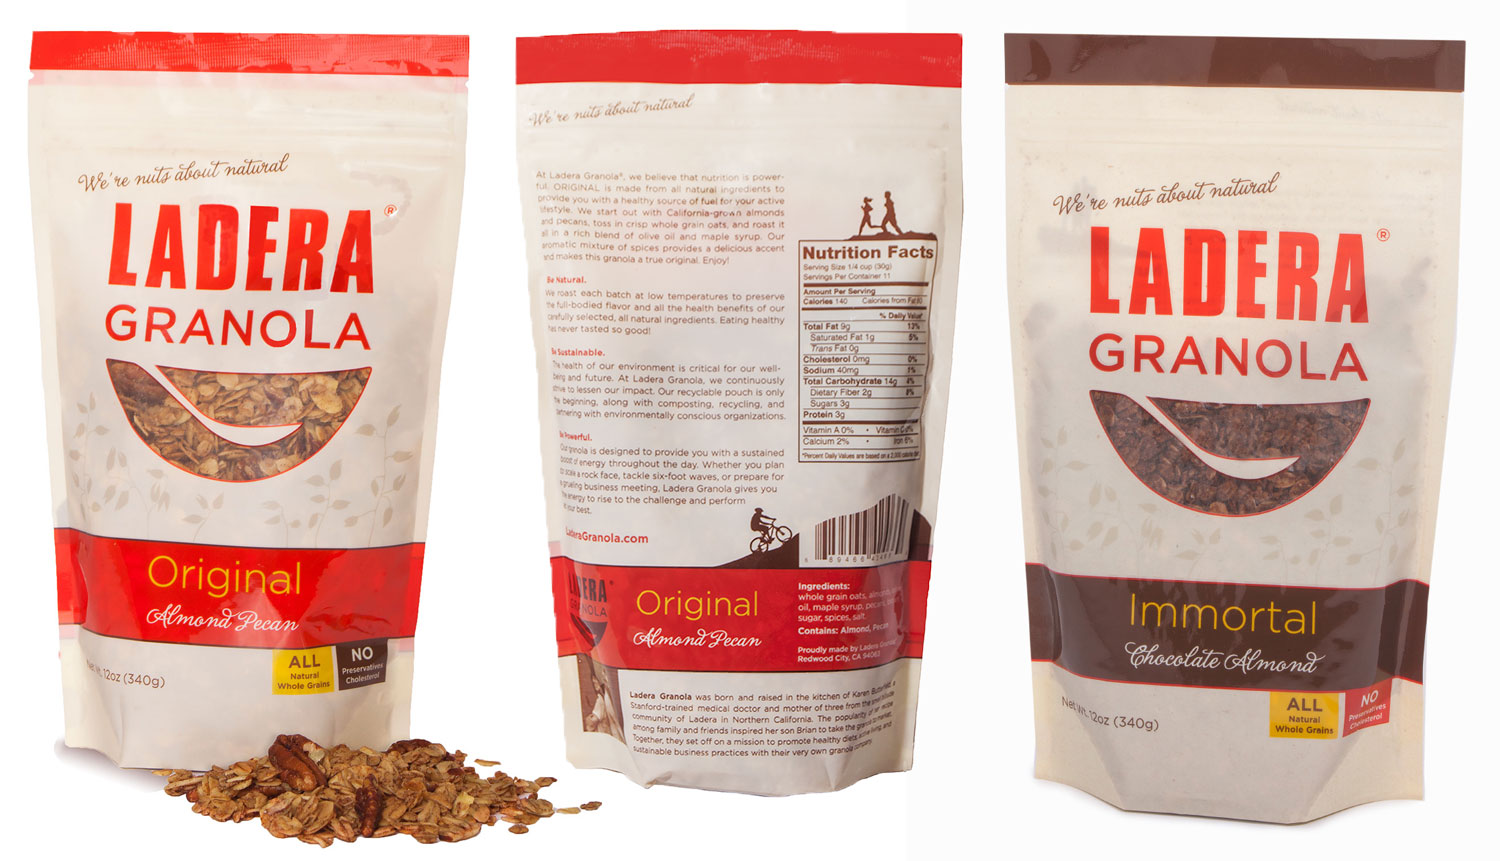 Ladera packaging